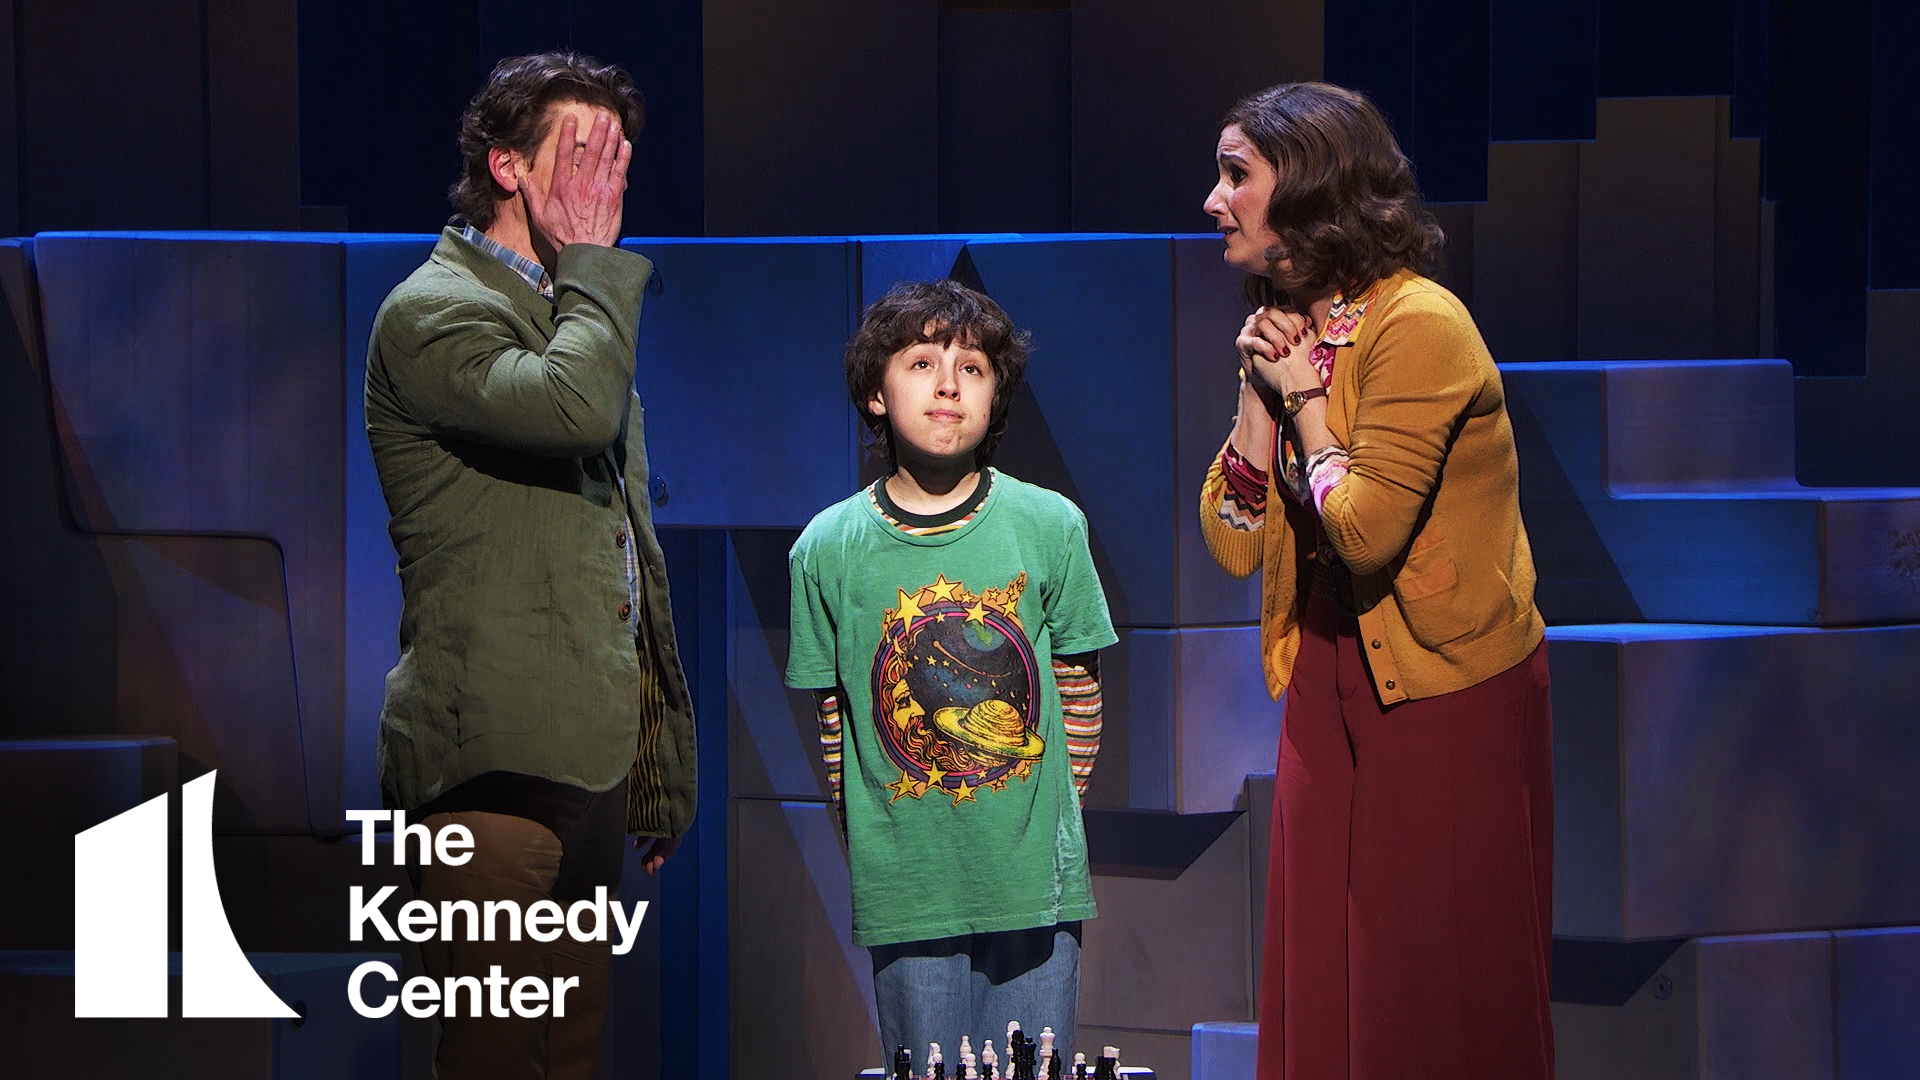 Falsettos - Behind the Scenes with the Creative Team | The Kennedy Center